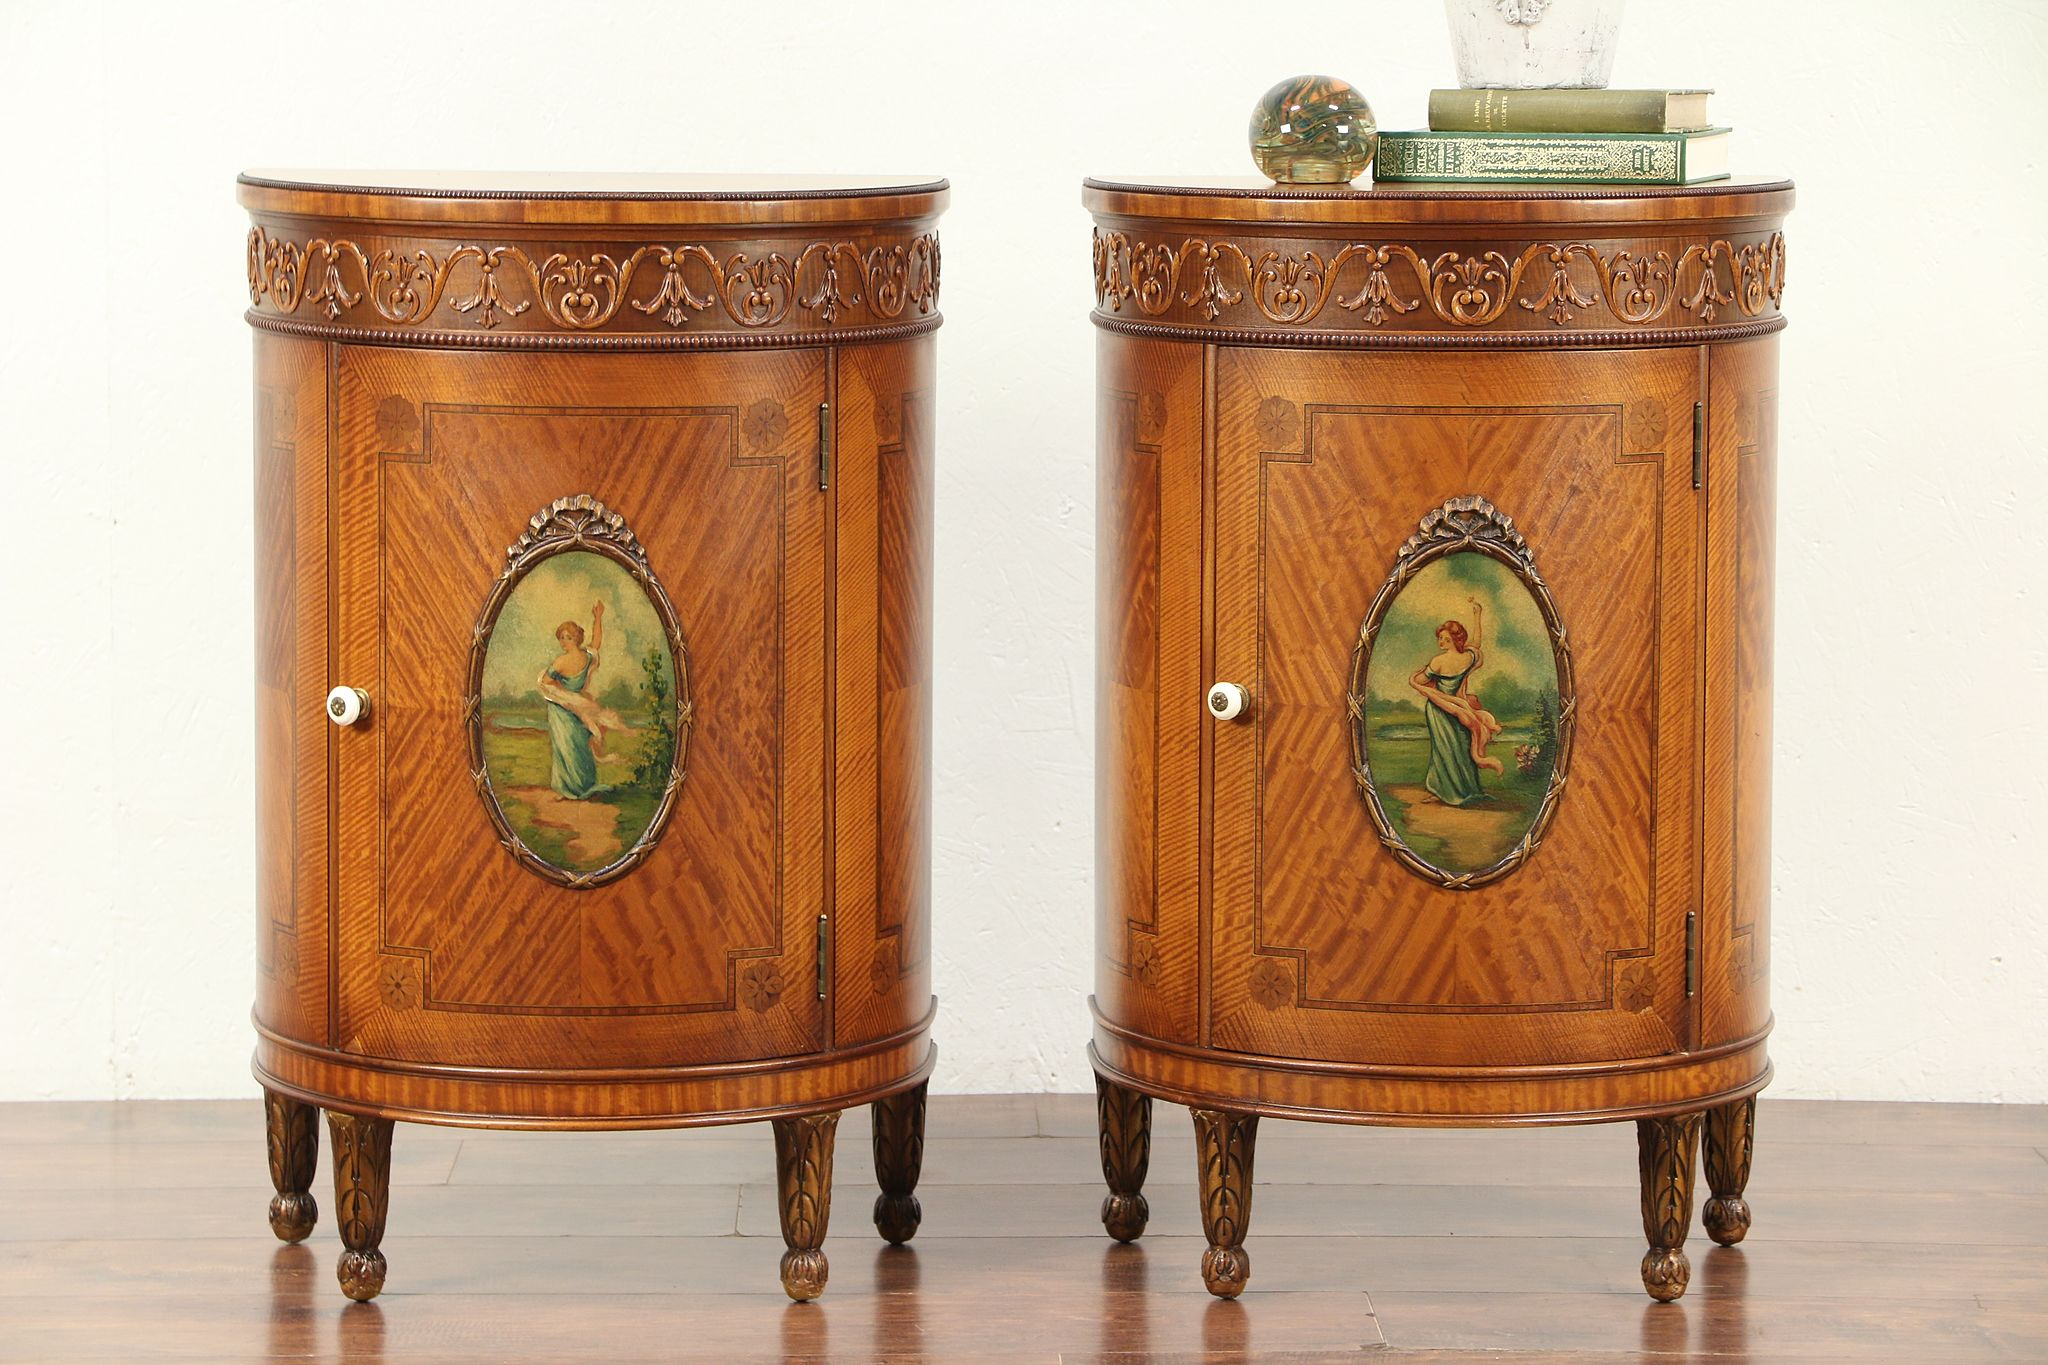 Sold Pair Antique Satinwood Demilune Nightstands Or End Tables Hand Painted 29472 Harp Gallery Antiques Furniture